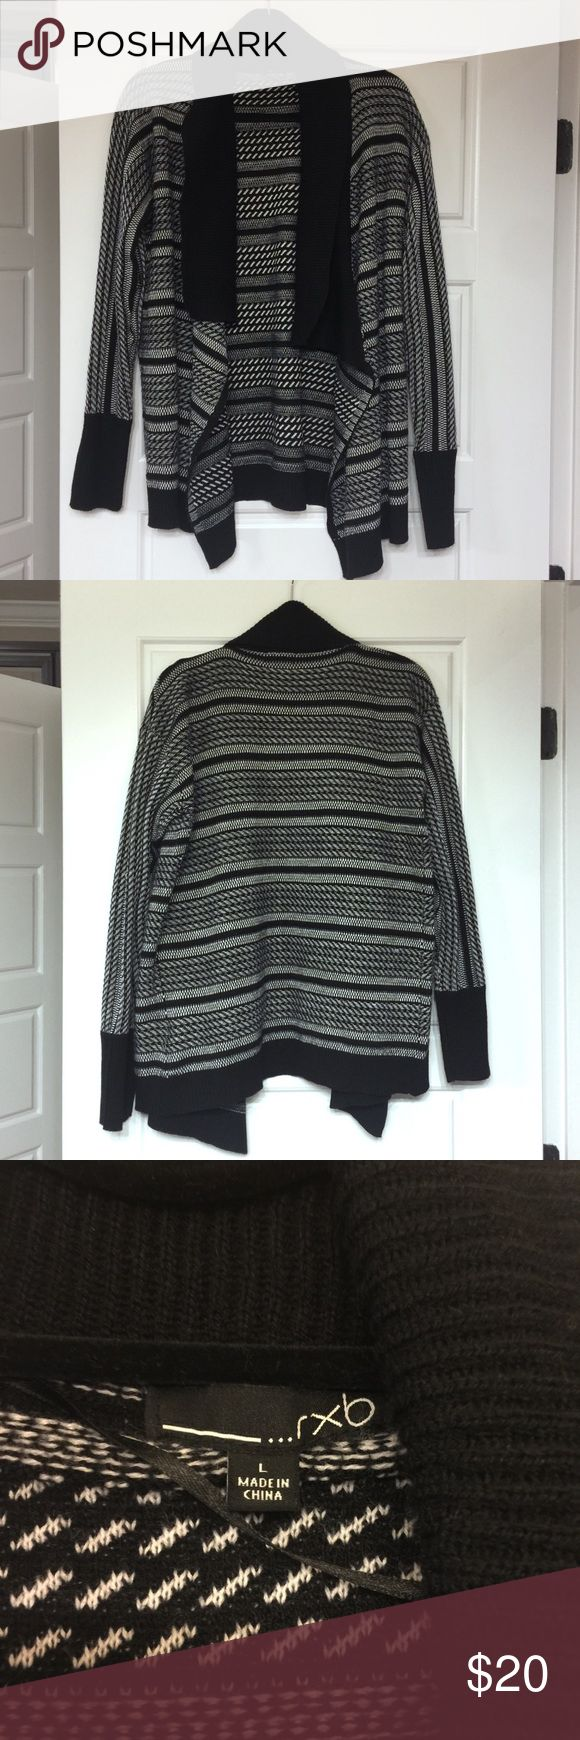 Striped Black and White Cardigan Sweater Striped Black and White Cardigan Sweater in great condition. Flowy, open front silhouette. Has a couple of pulls that can be easily tucked back in but are definitely not noticeable. RXB Sweaters Cardigans